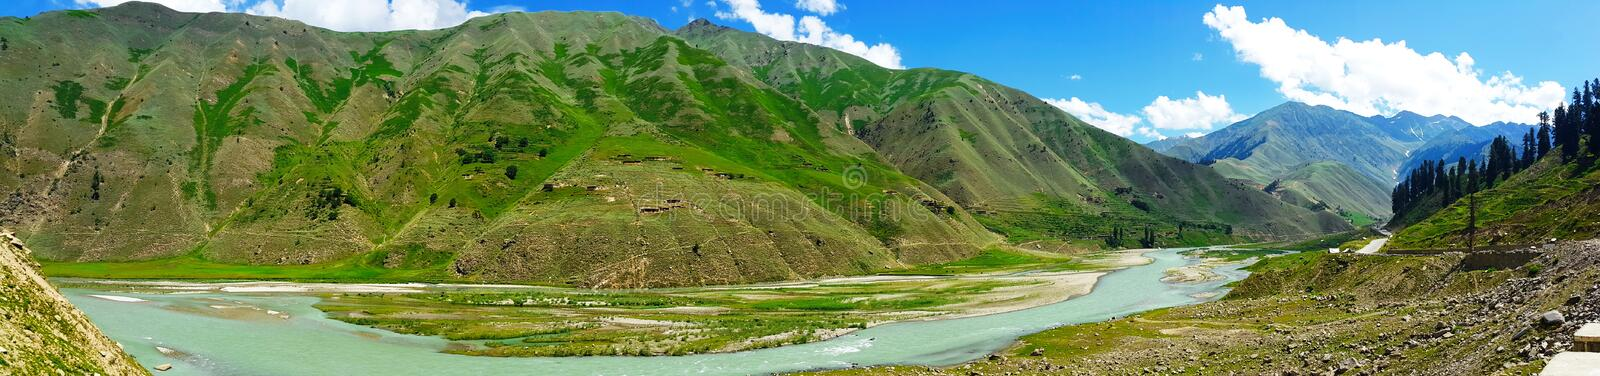 Kunhar River in Panoramic View stock images